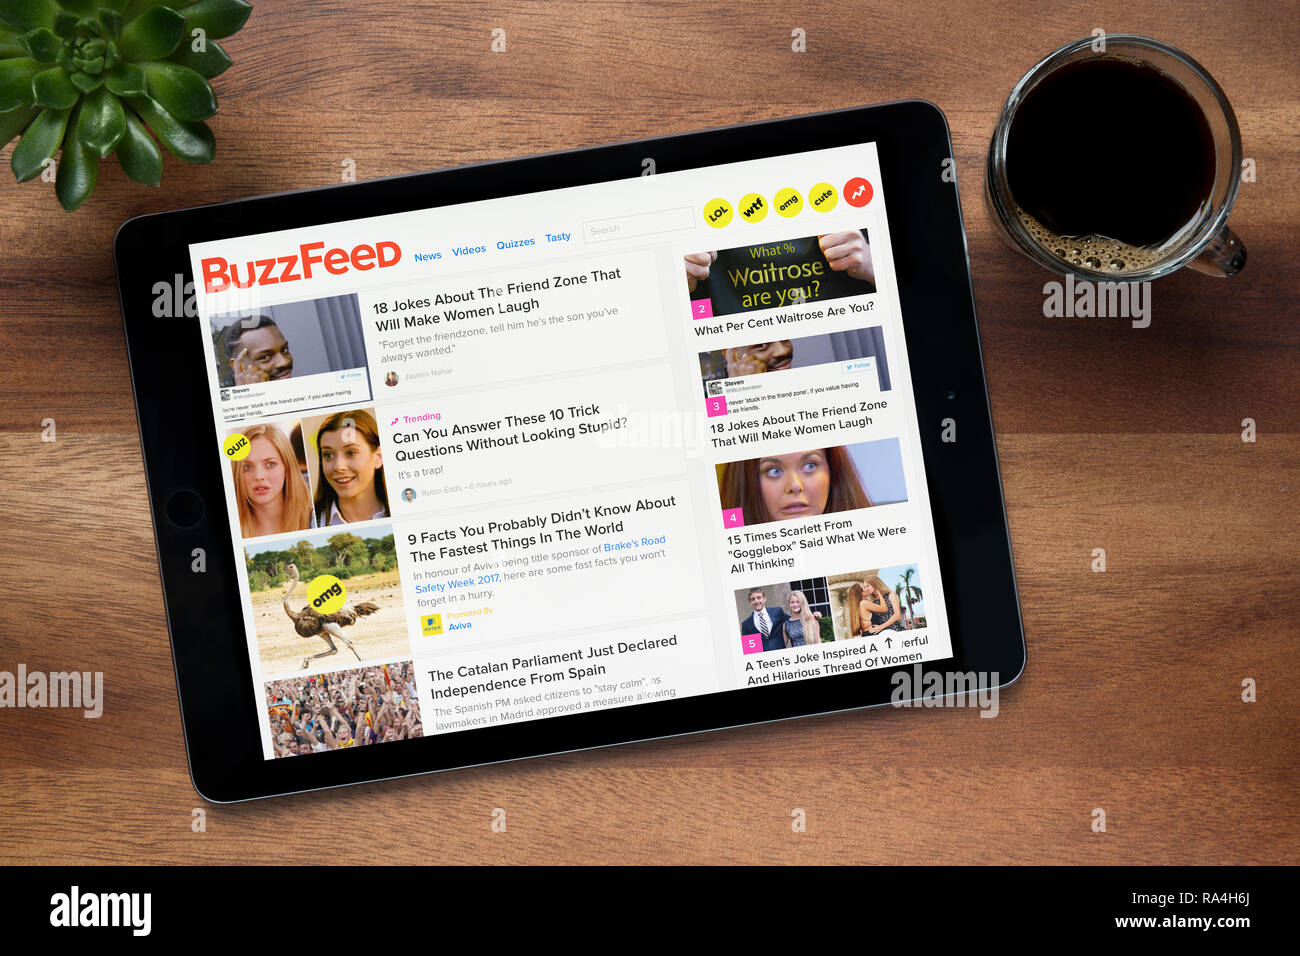 Buzzfeed Stock Photos & Buzzfeed Stock Images - Alamy